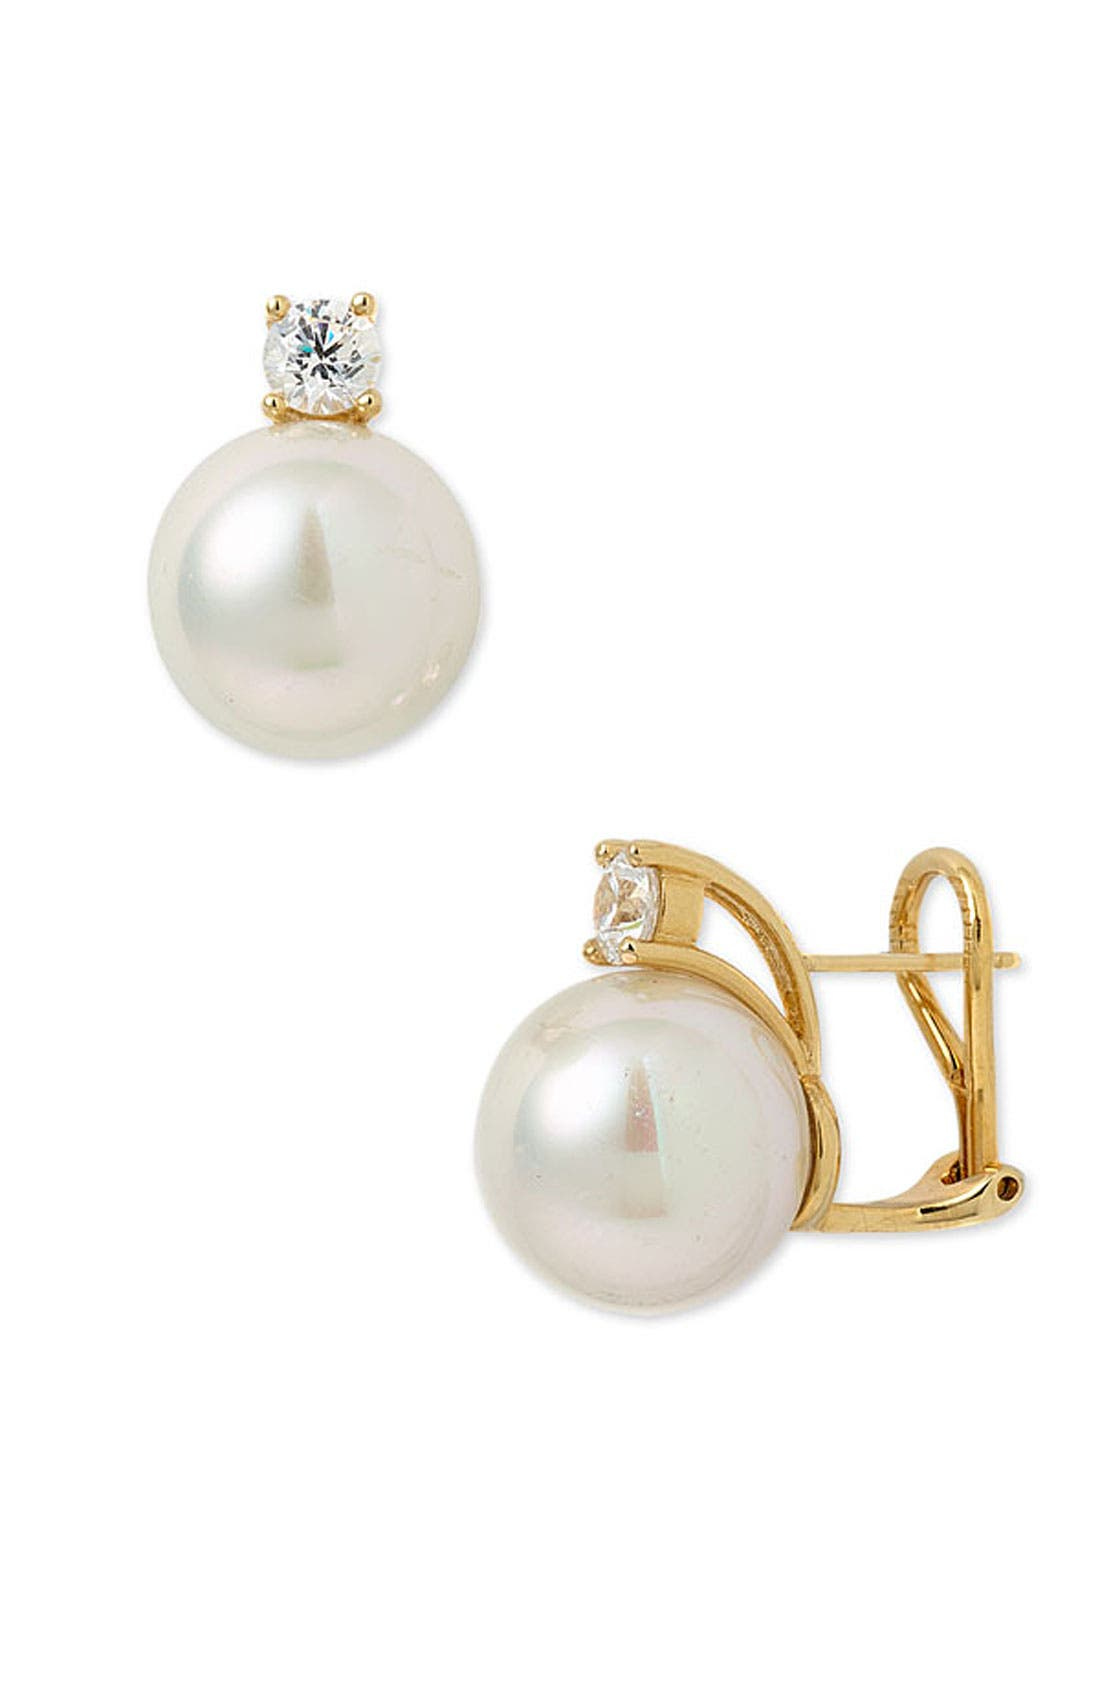 Alternate Image 1 Selected - Majorica 12mm Round Pearl Stud Earrings with Cubic Zirconia